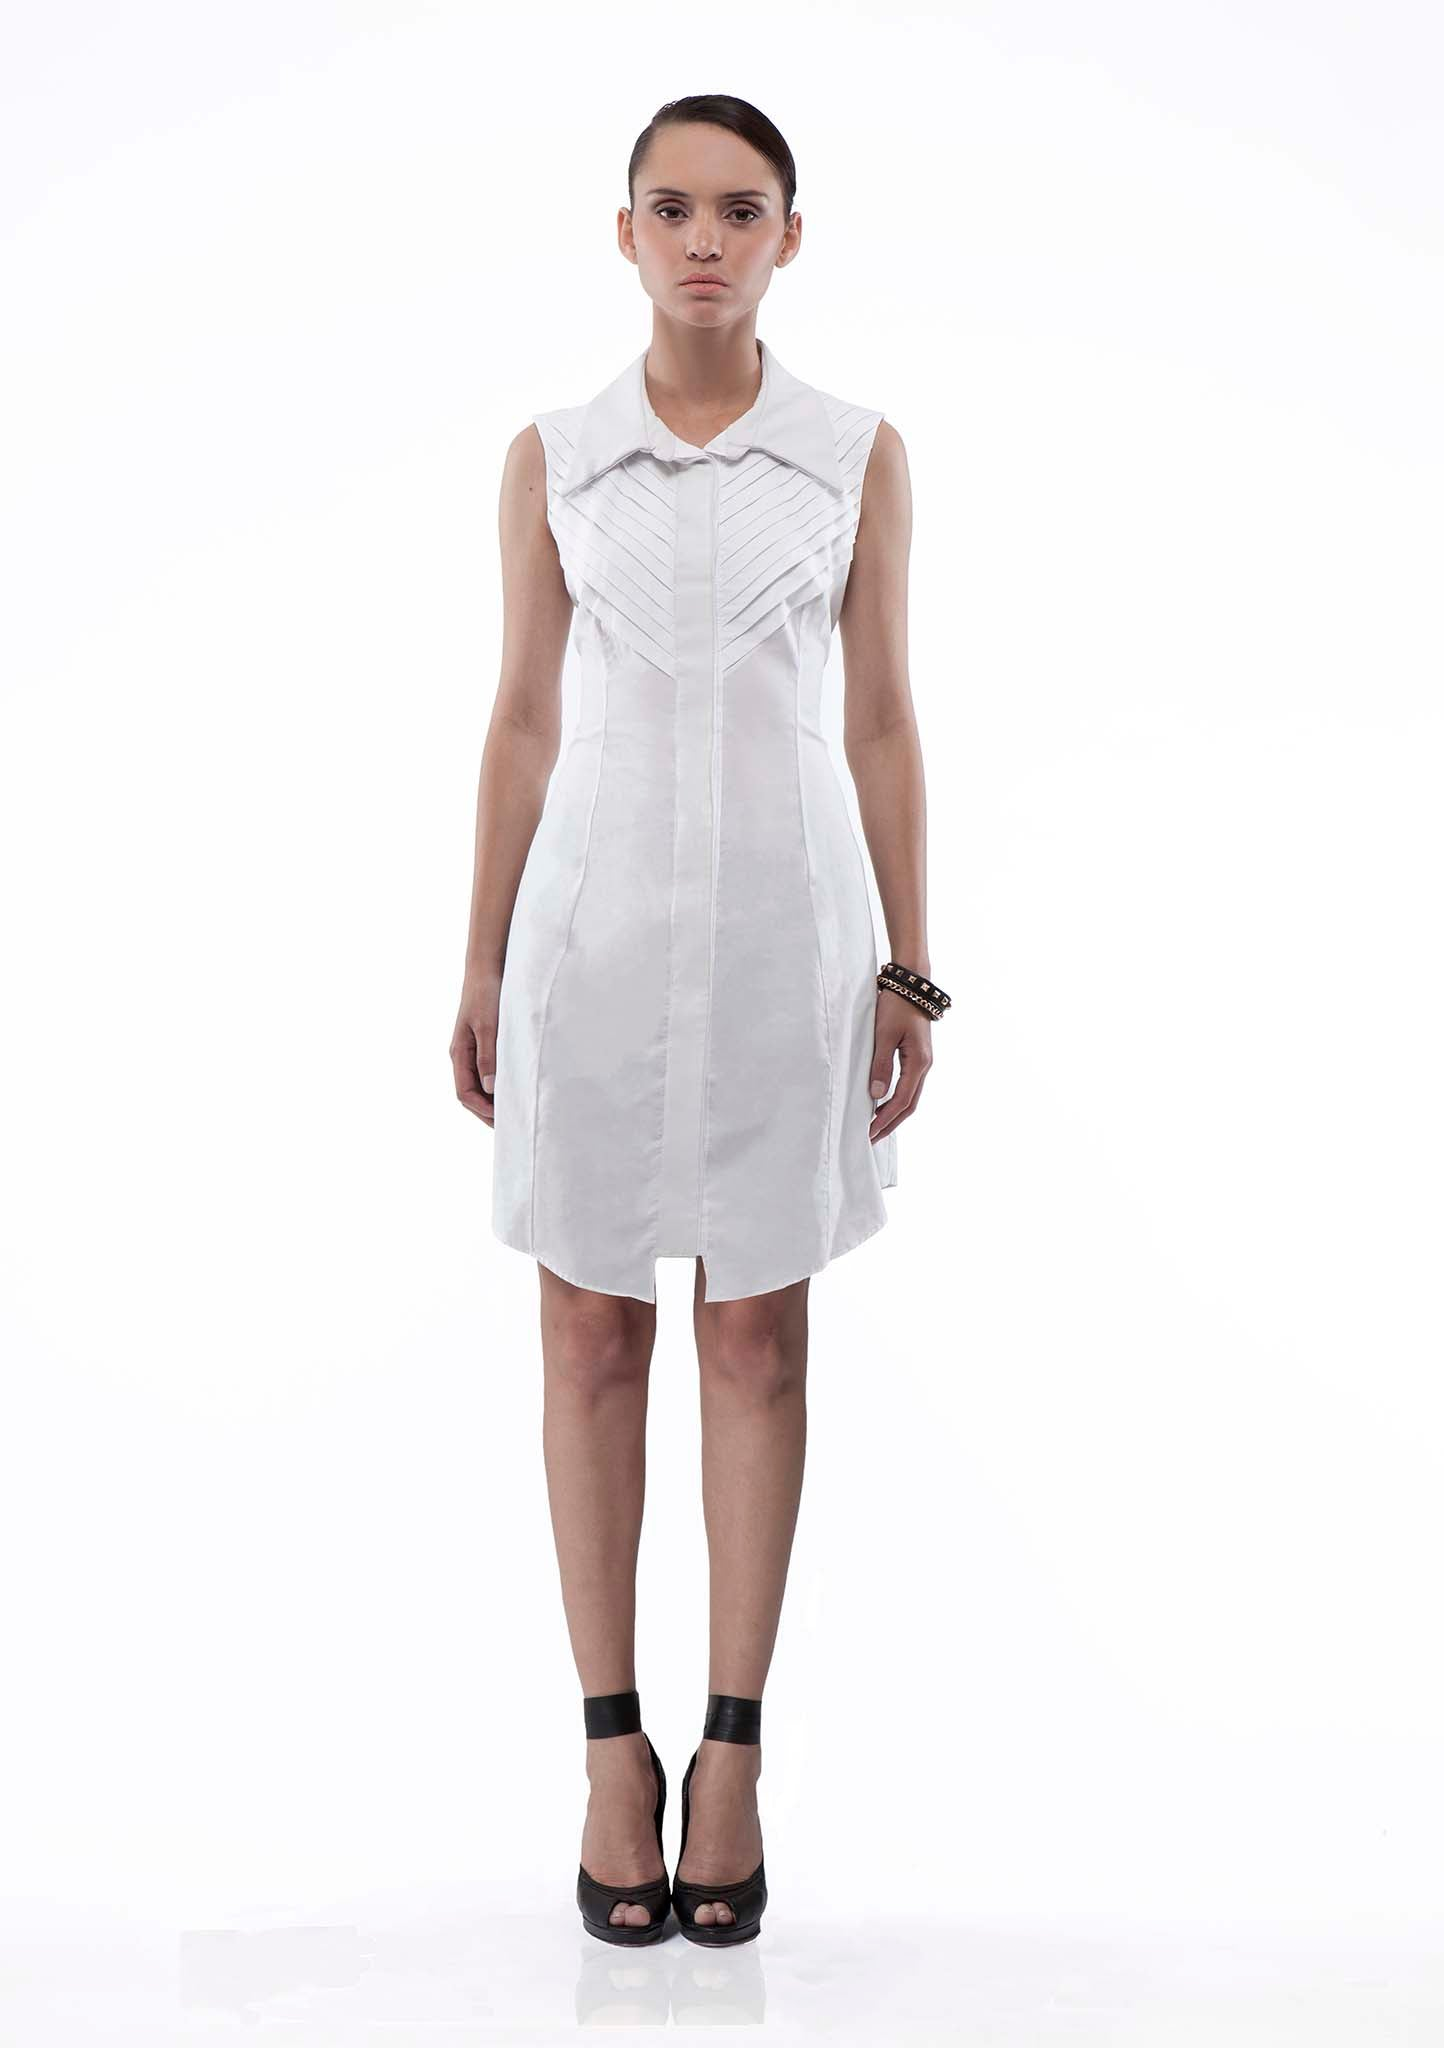 Mulan Shirt Dress - HEMYCA London